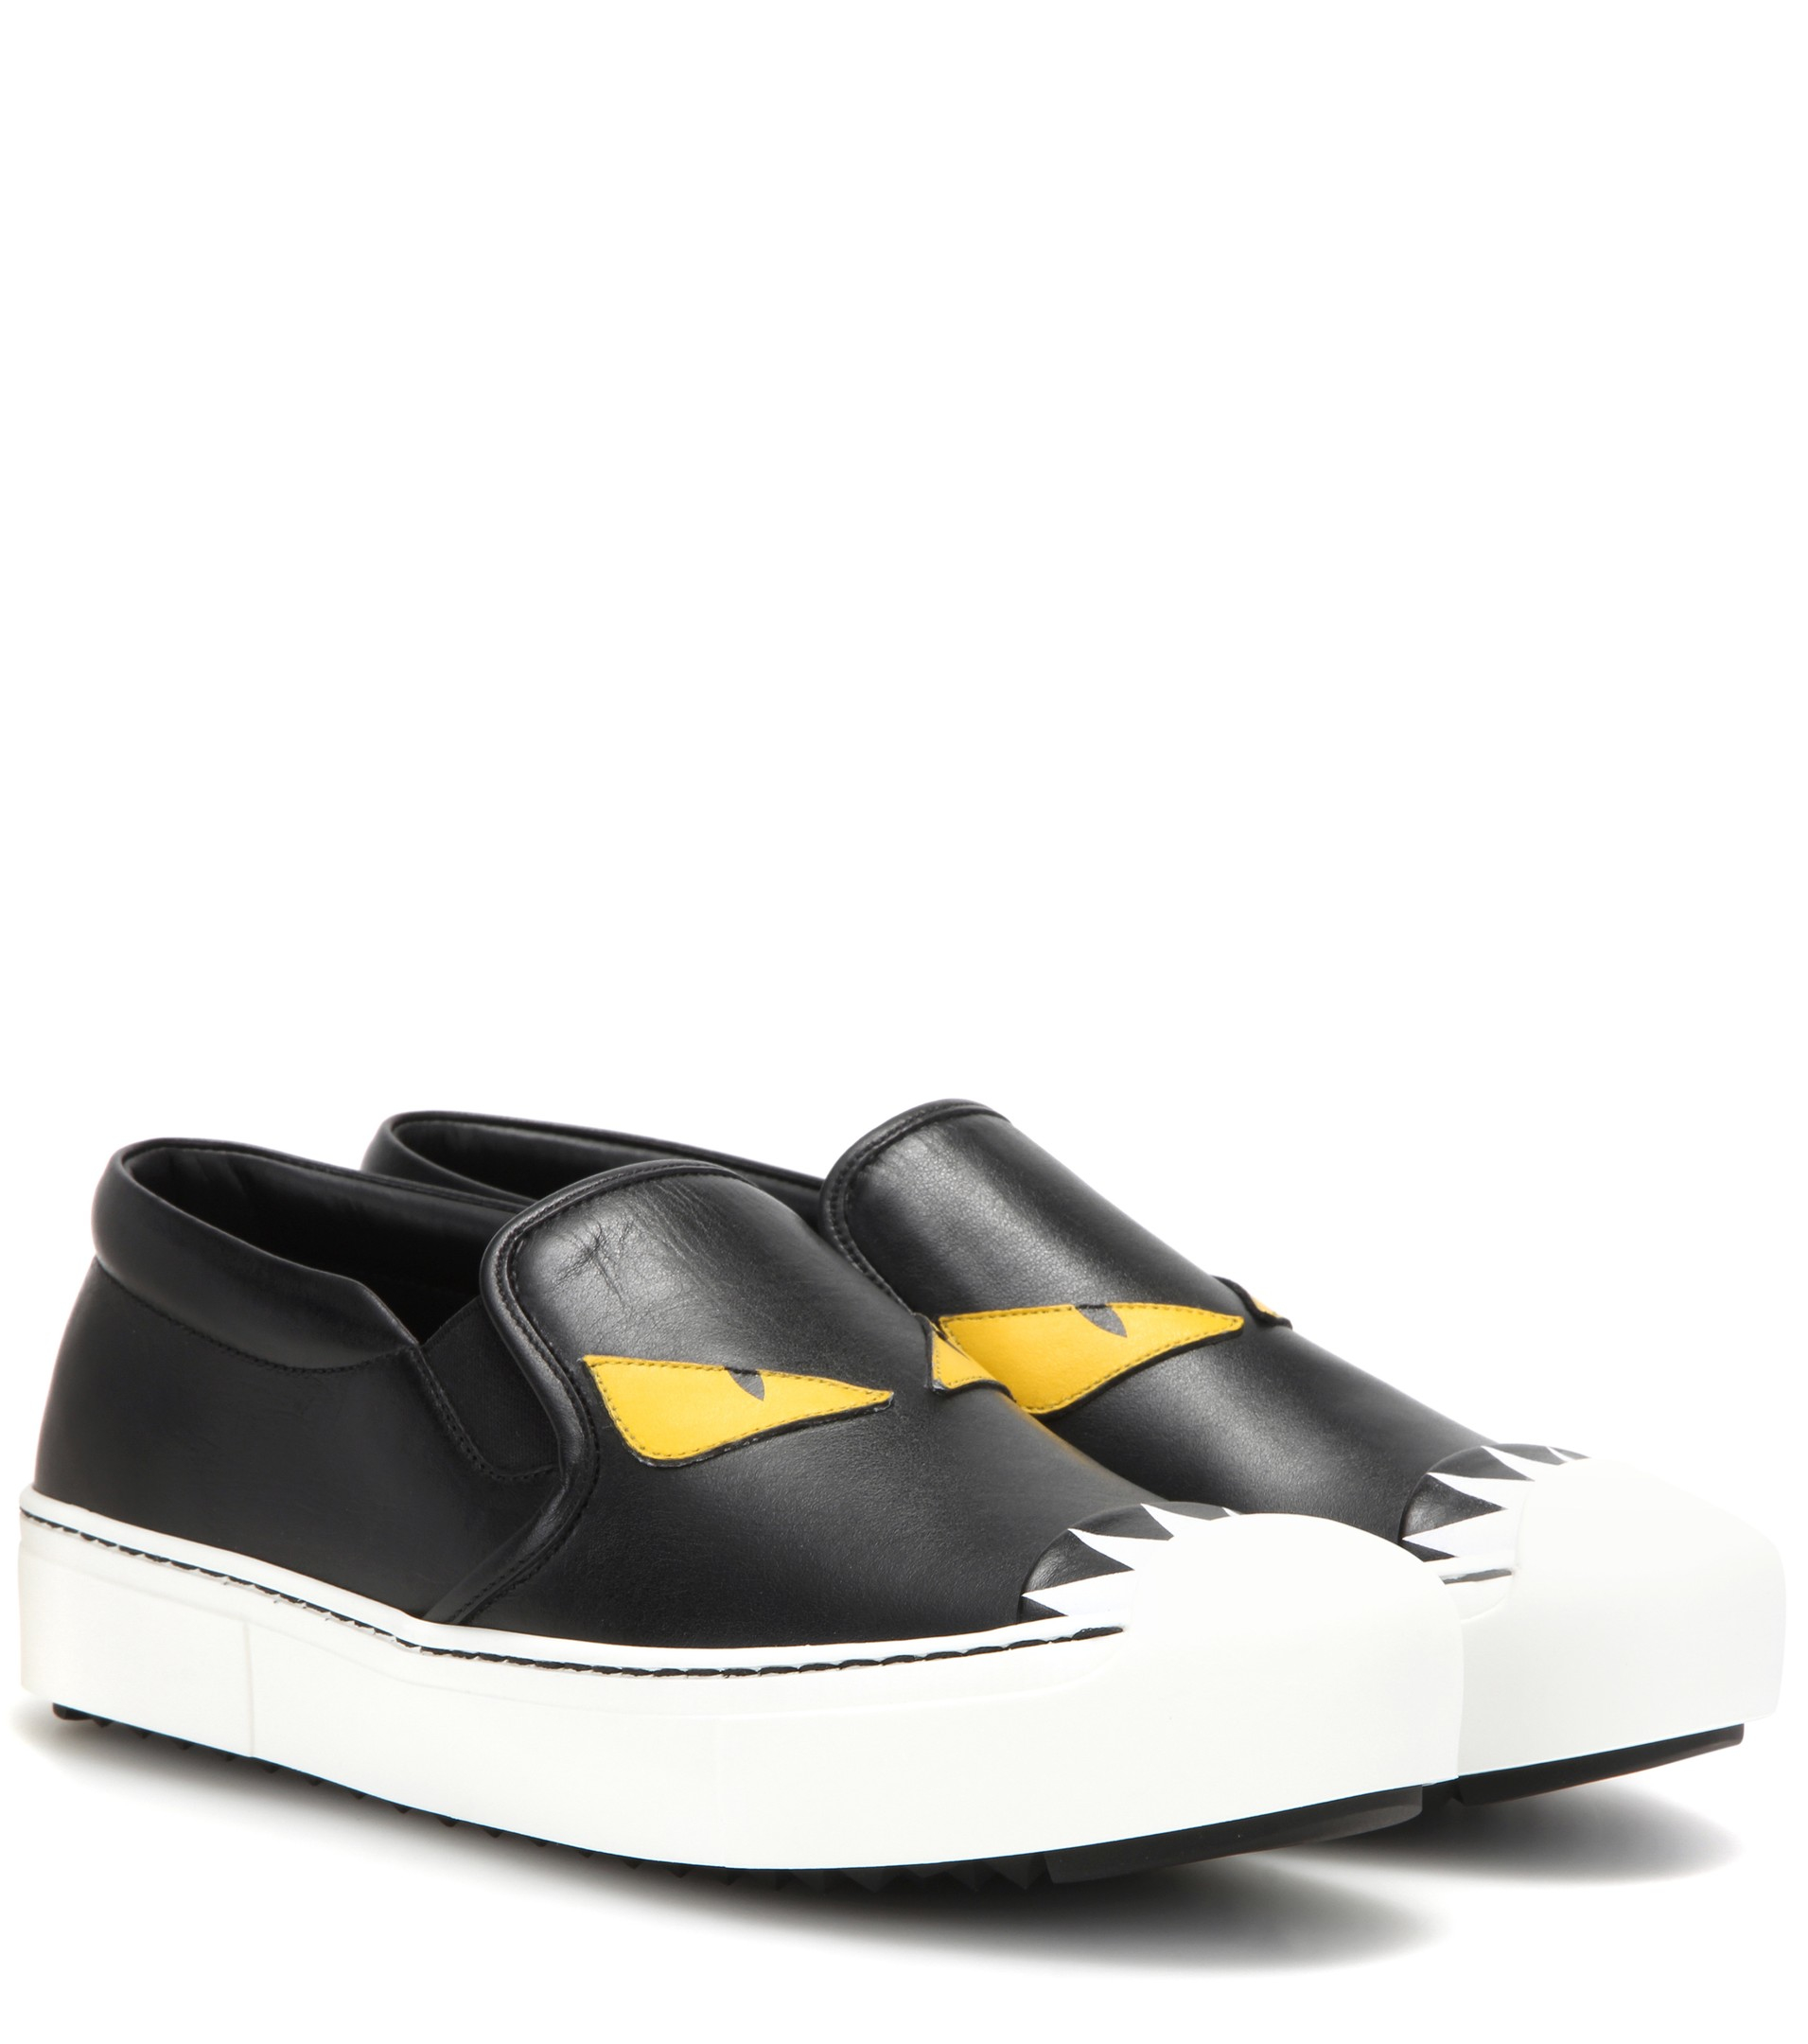 Fendi Patent Leather Monster Shoes